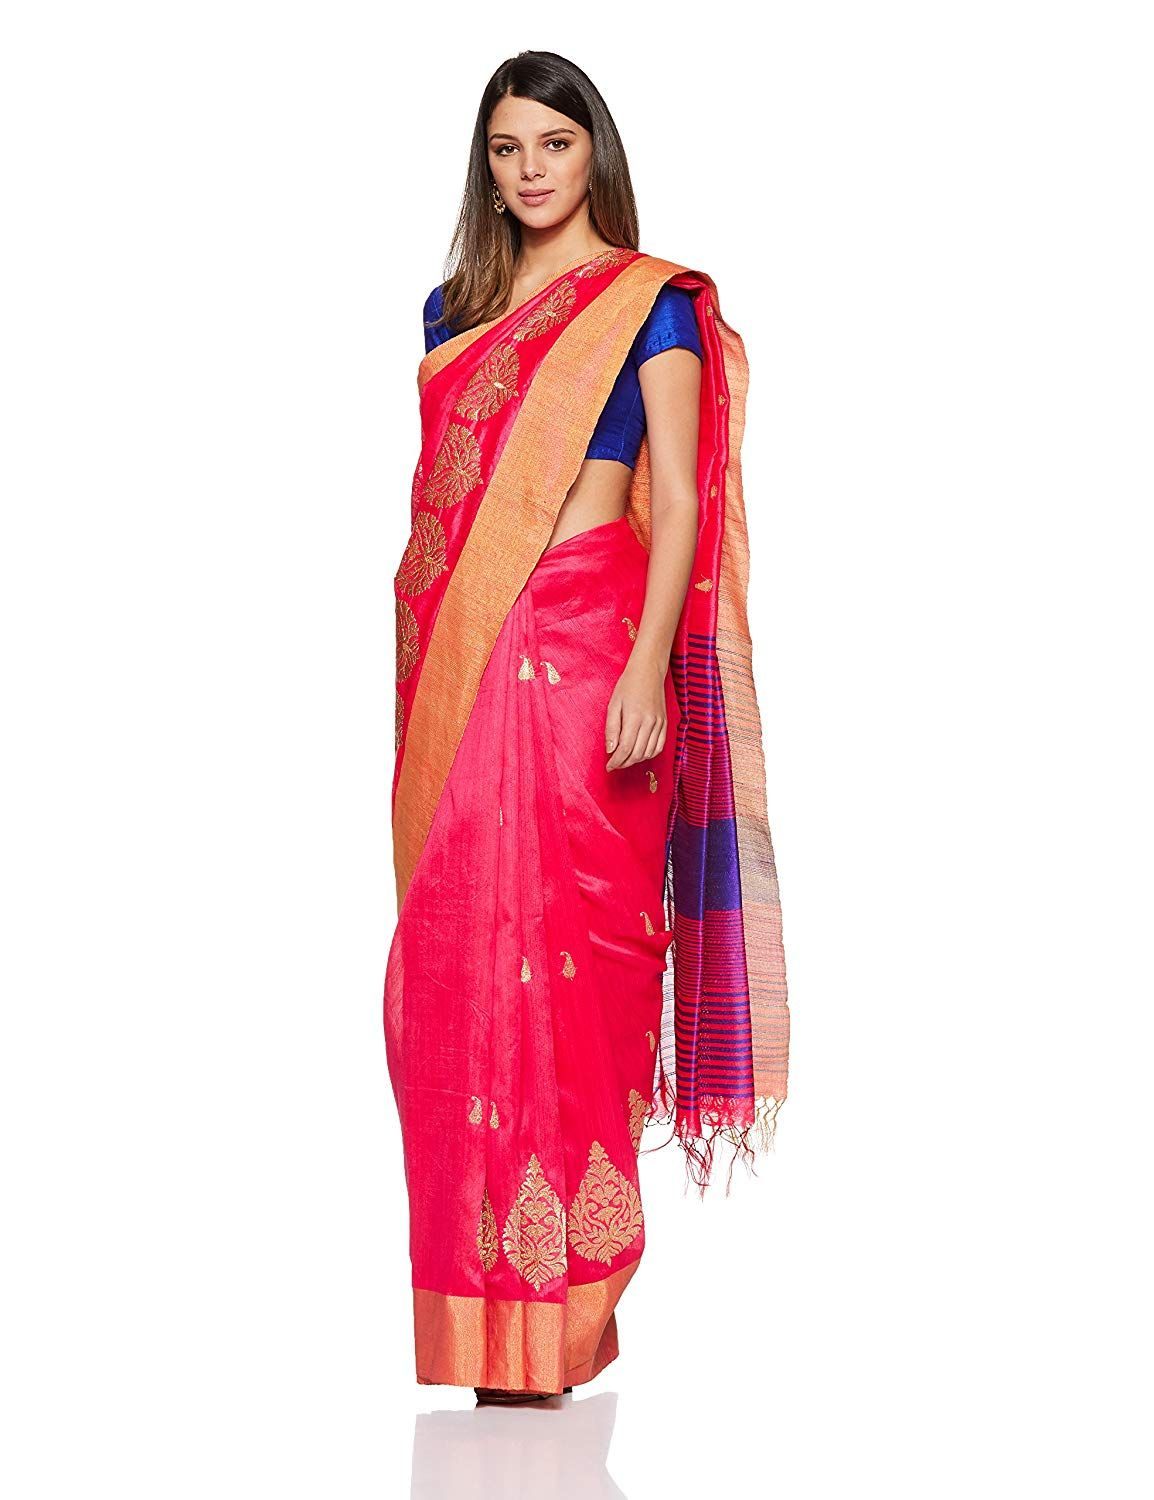 5397a1afbdca6 Aalia Art Silk Embroidered Saree with Blouse piece (8802-Pink ...